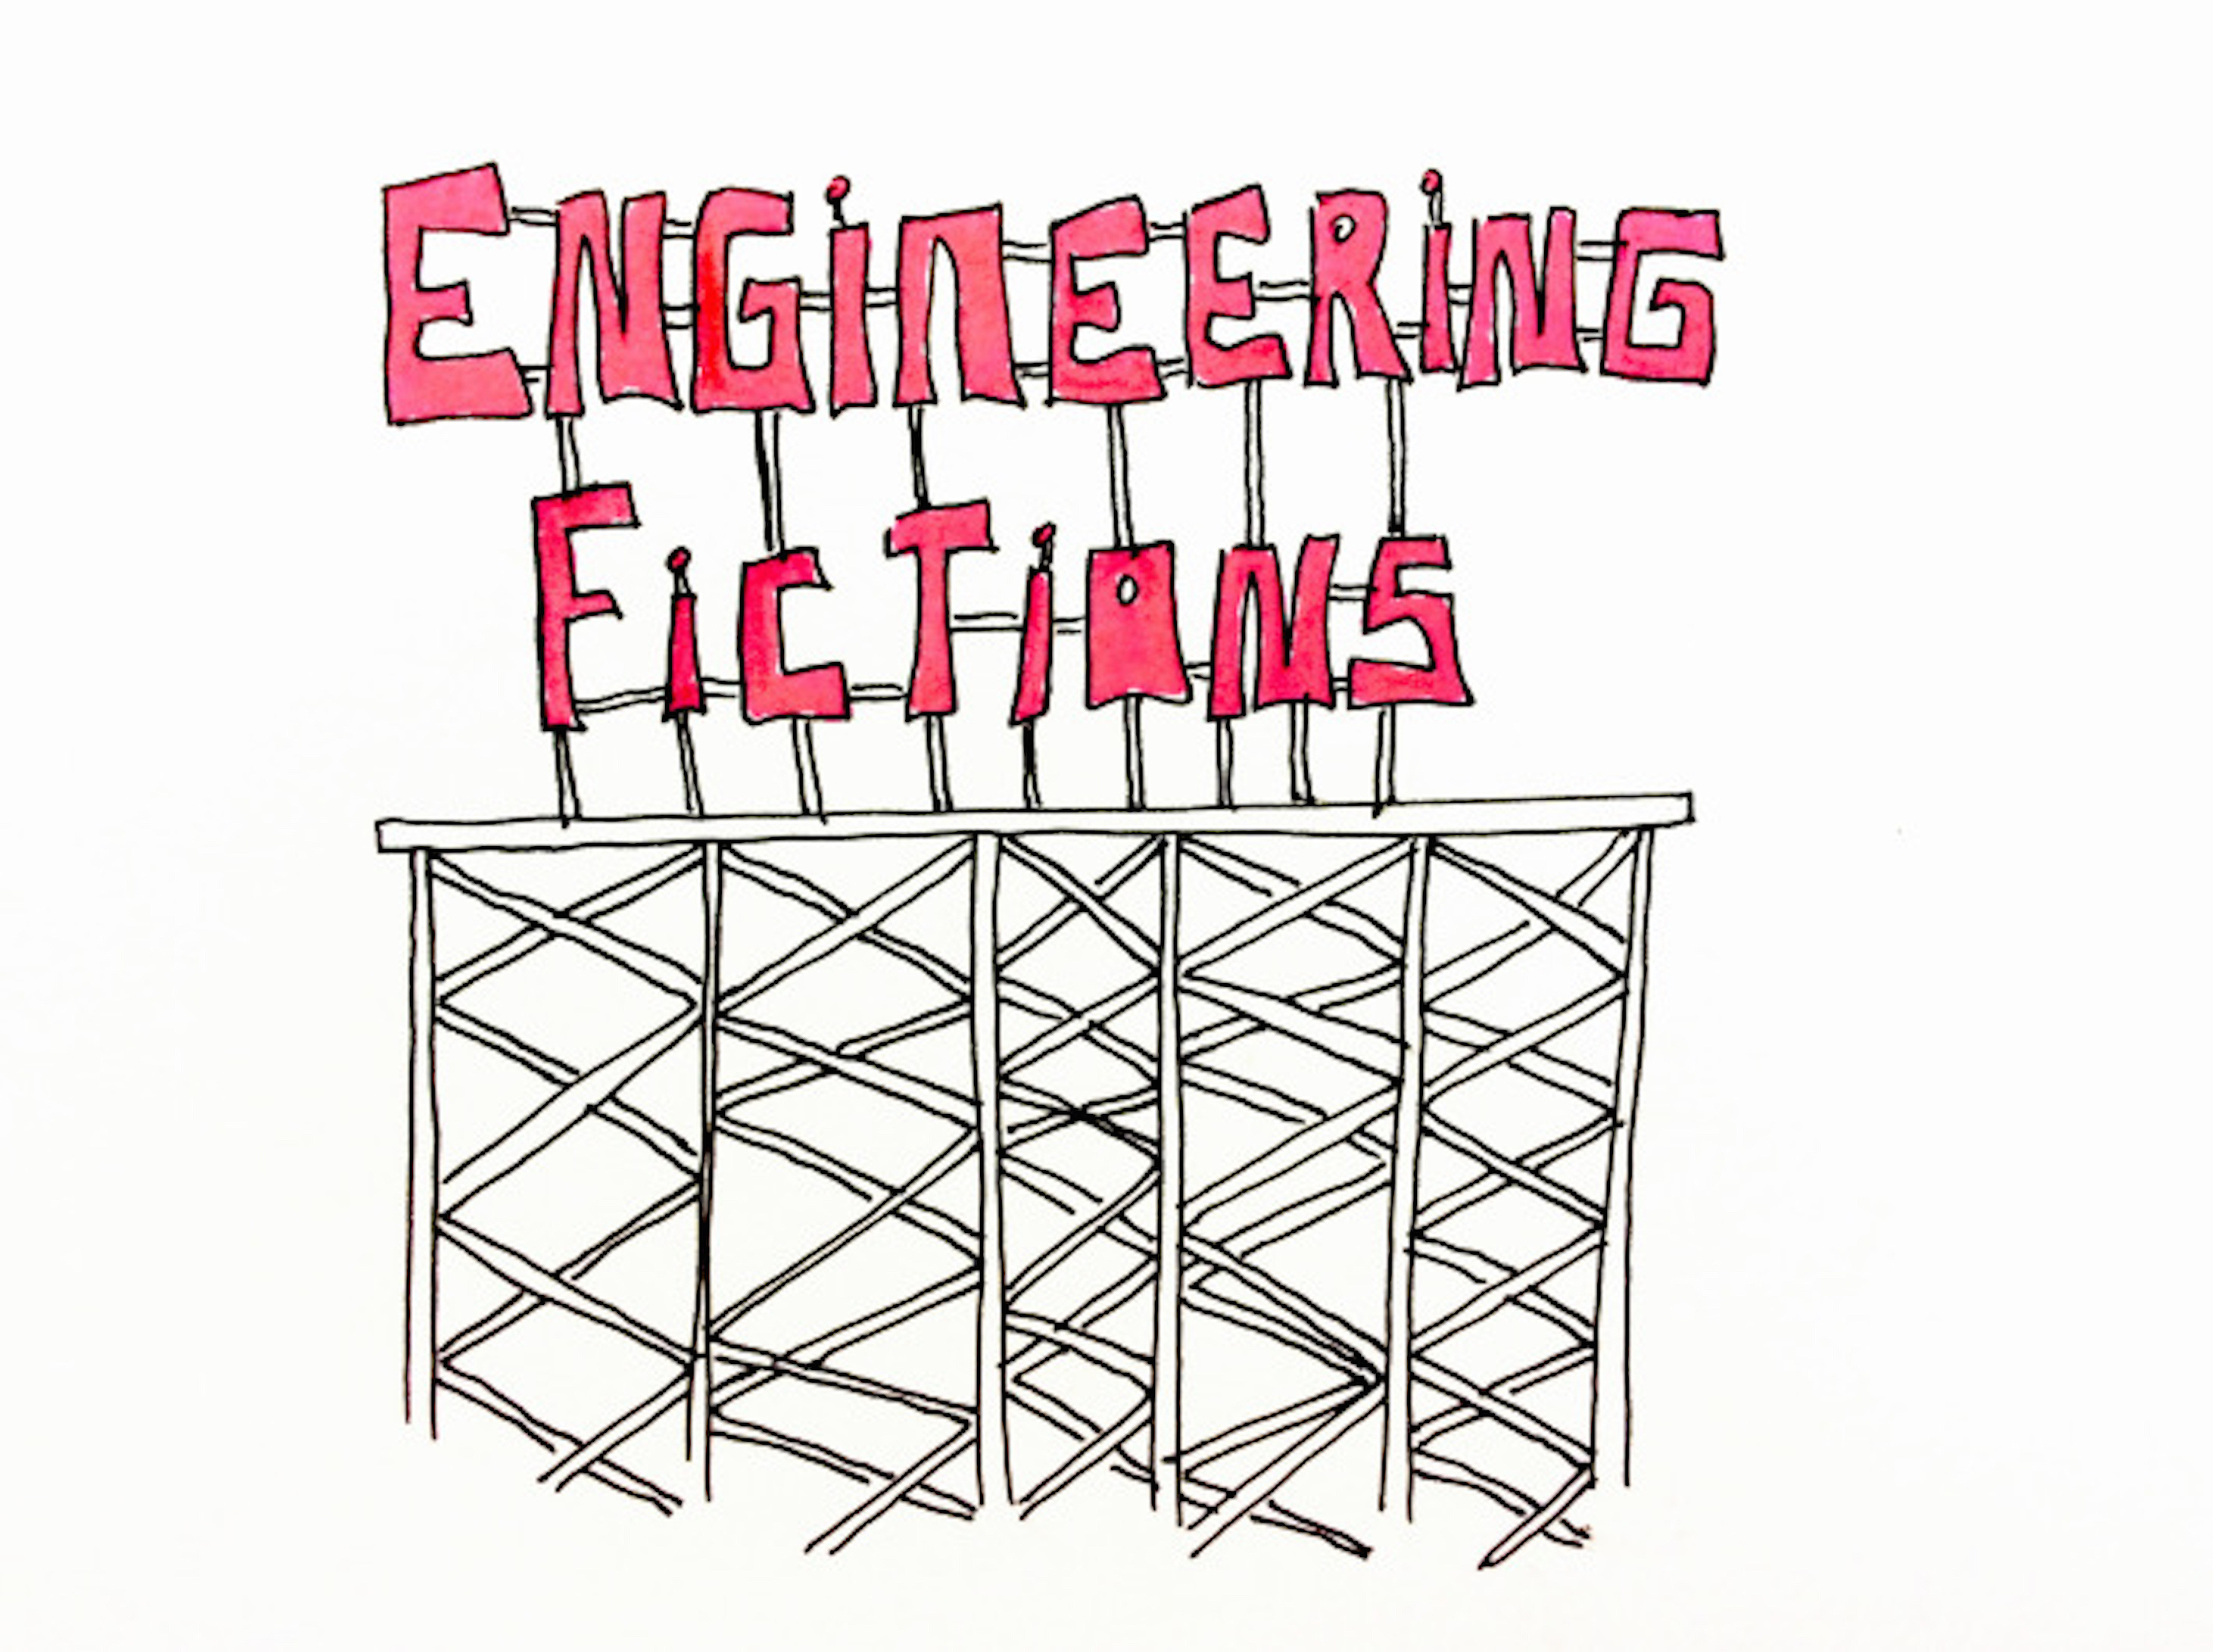 engineeringfictions_sign-copy